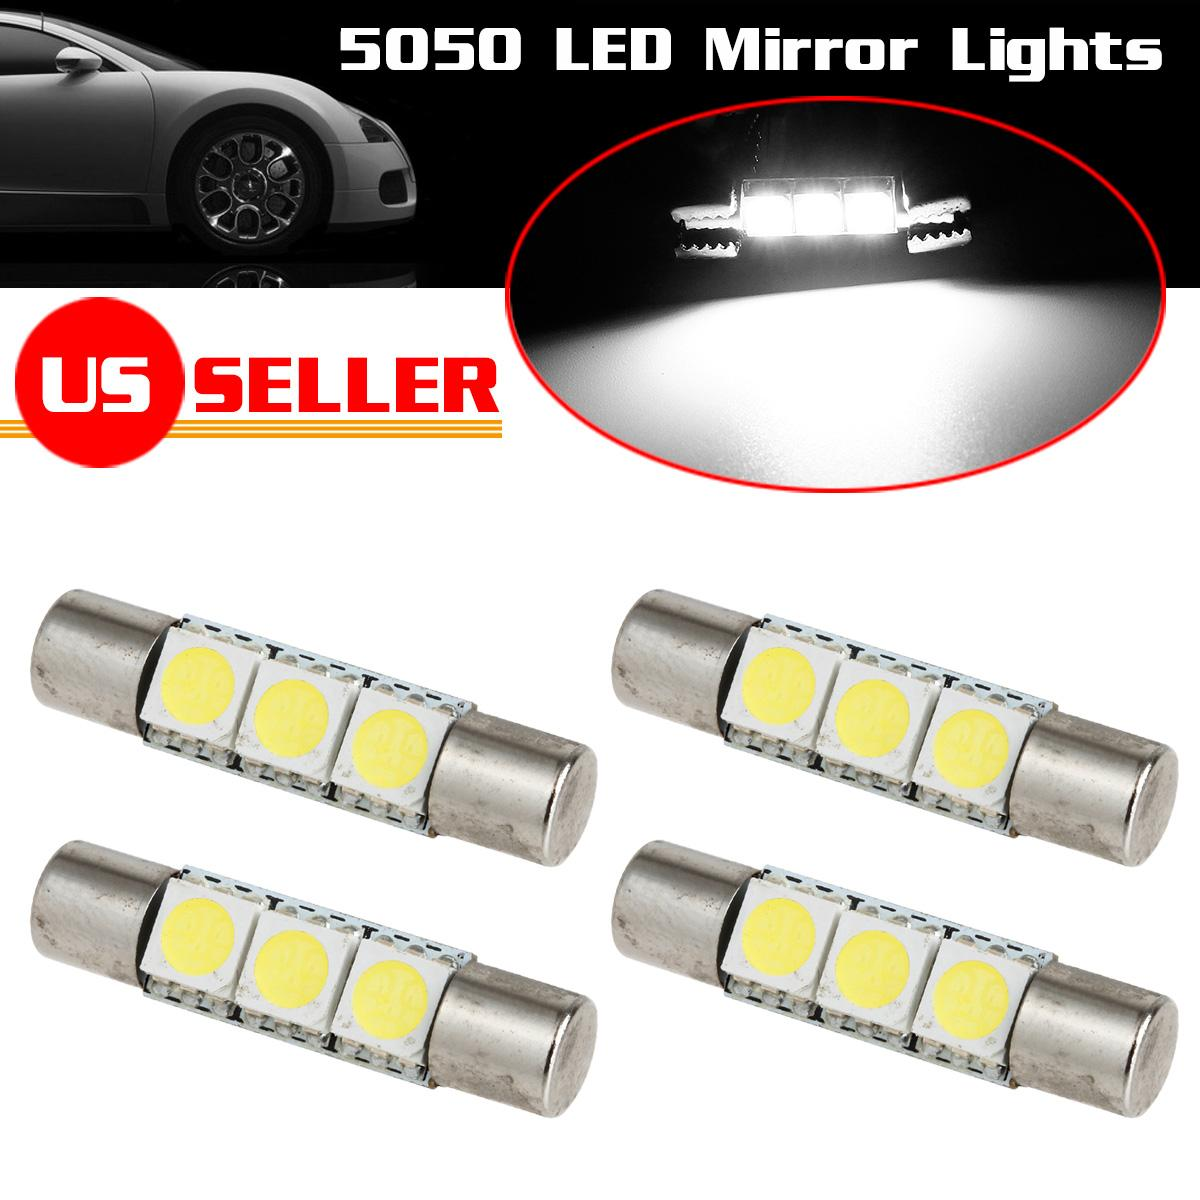 4x xenon white 3 5050 smd led bulbs for car vanity mirror lights sun visor lamps ebay. Black Bedroom Furniture Sets. Home Design Ideas